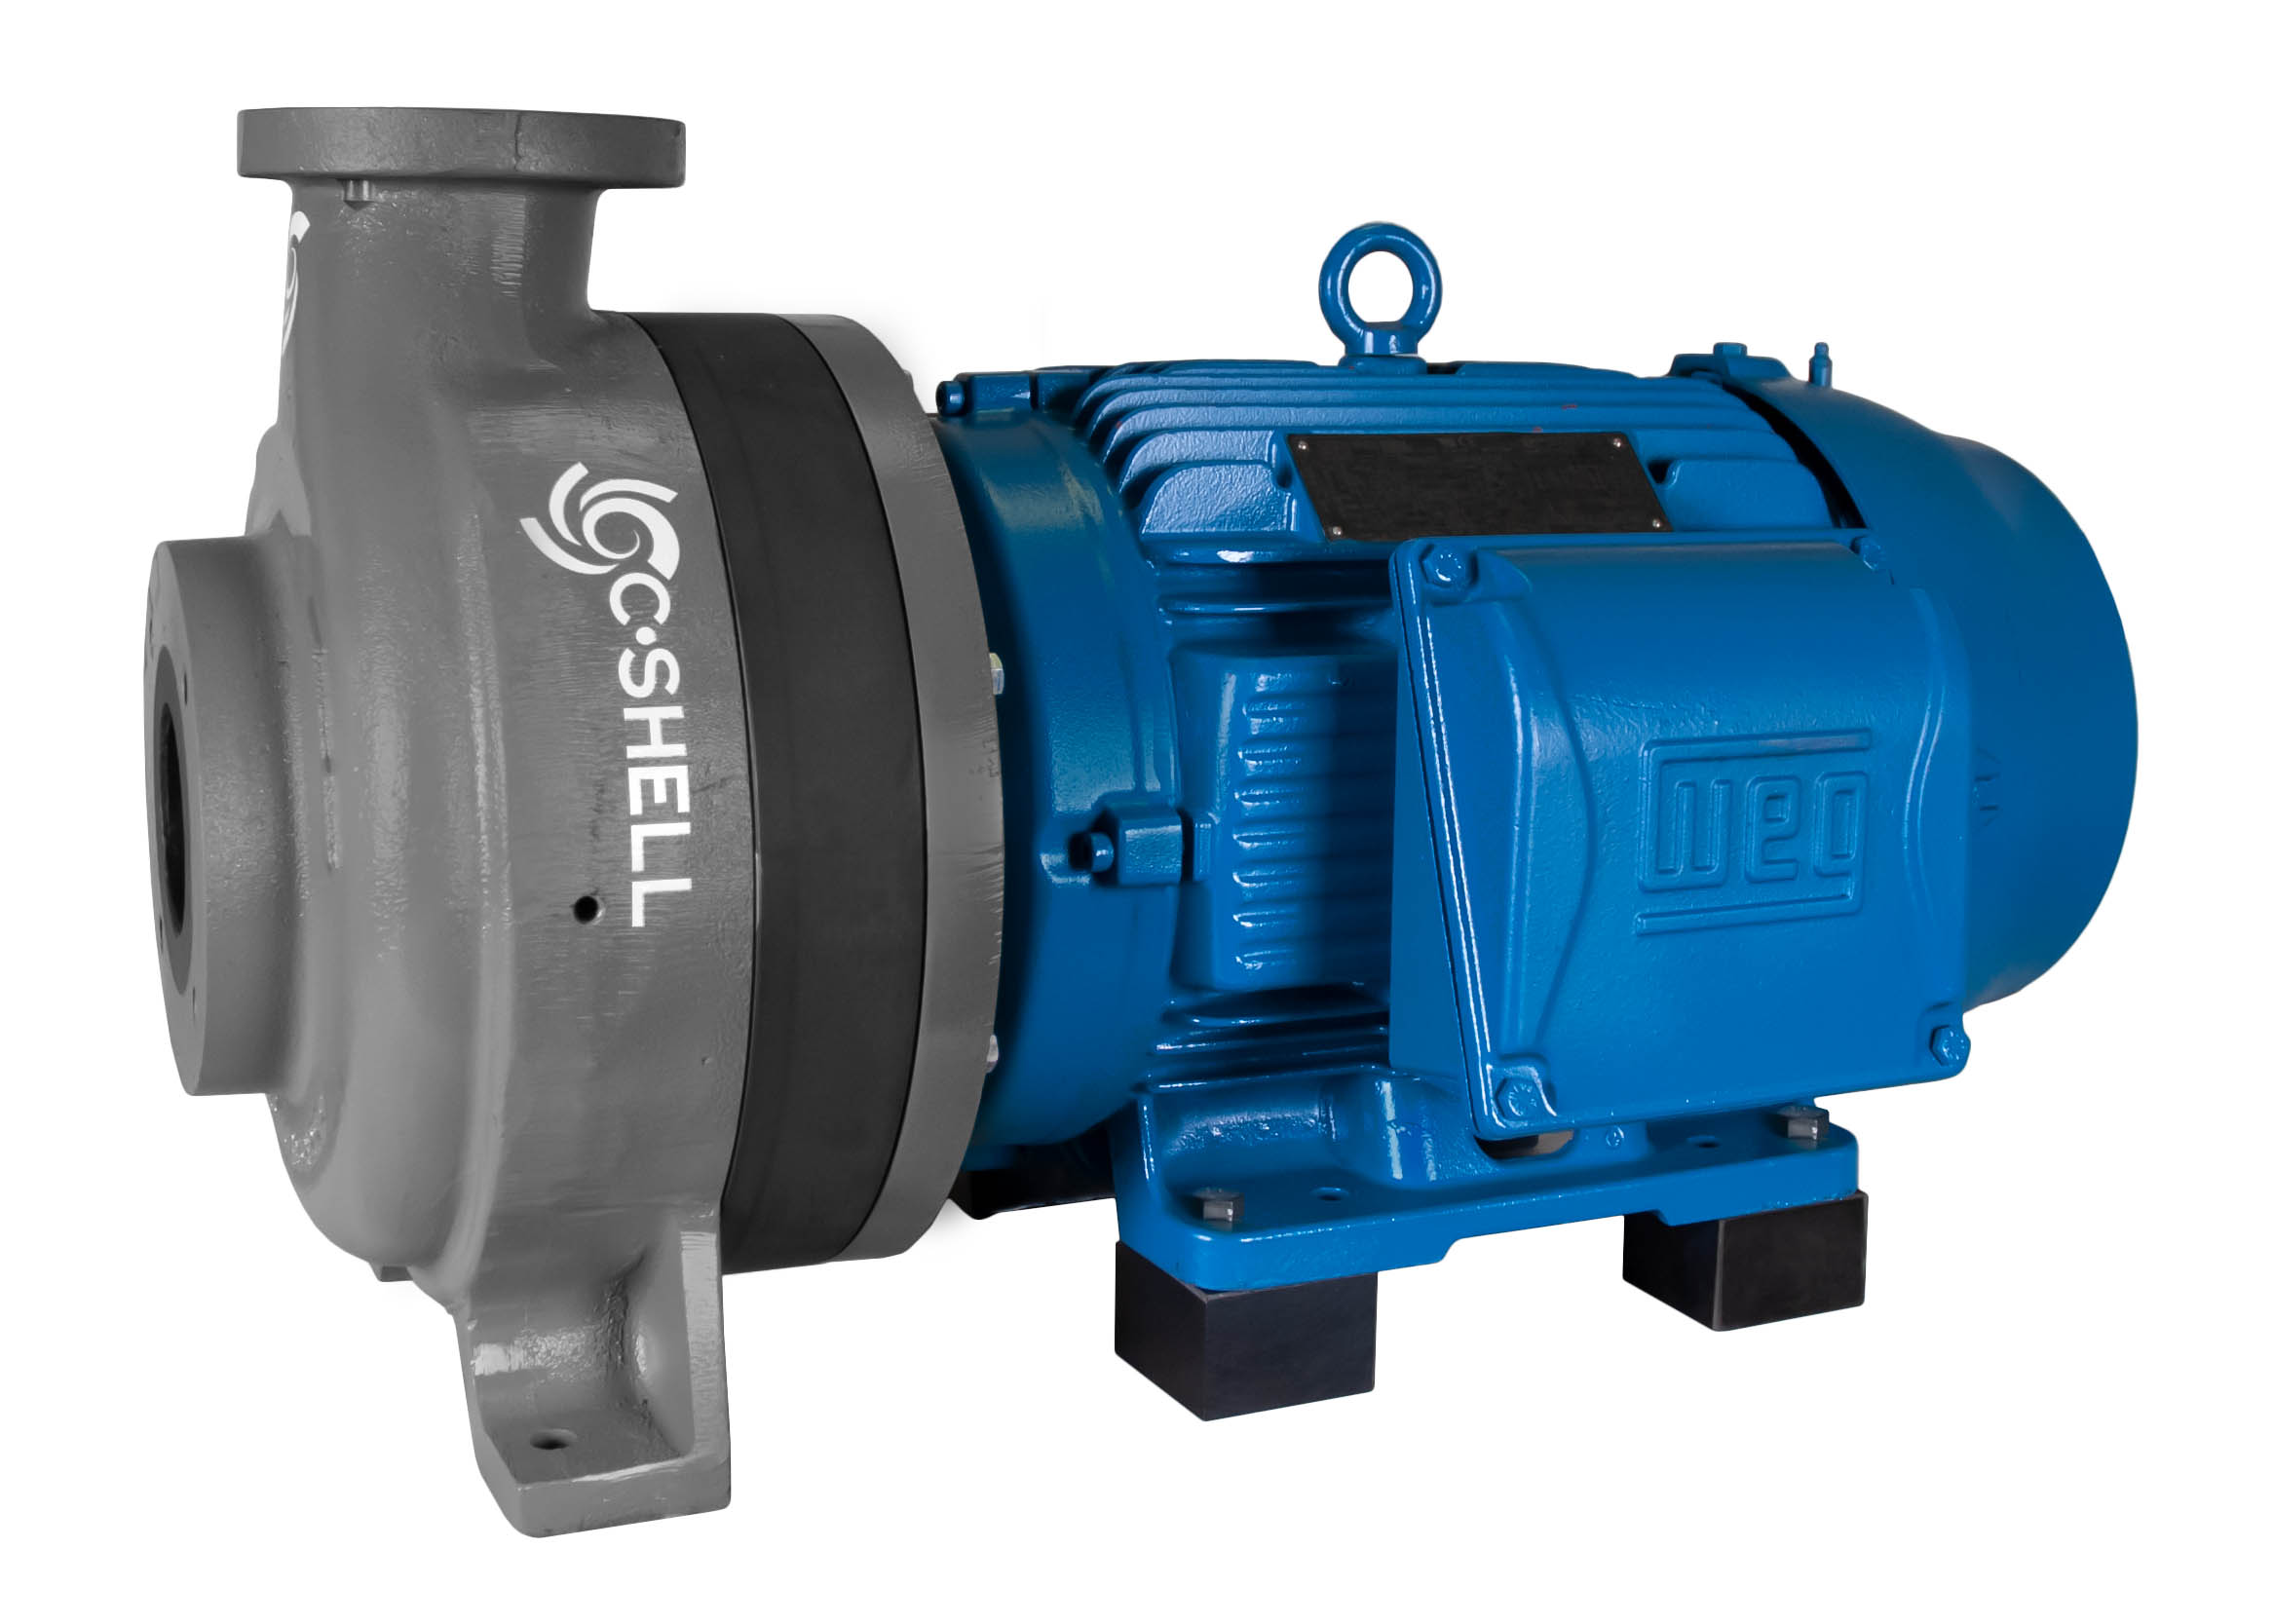 C-Shell 3x2-10 Pump with blue WEG Motor right angle view